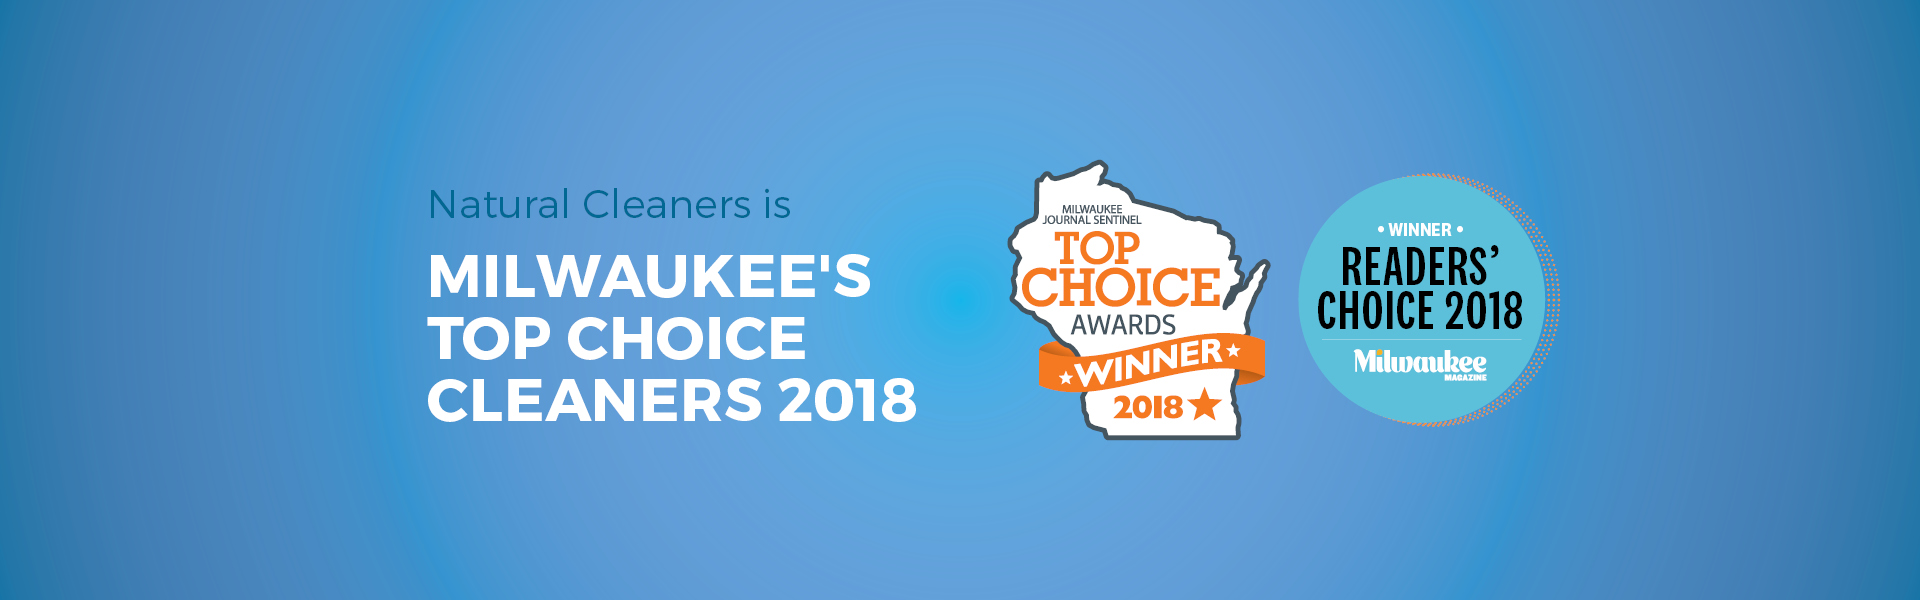 Top Choice Cleaners 2018